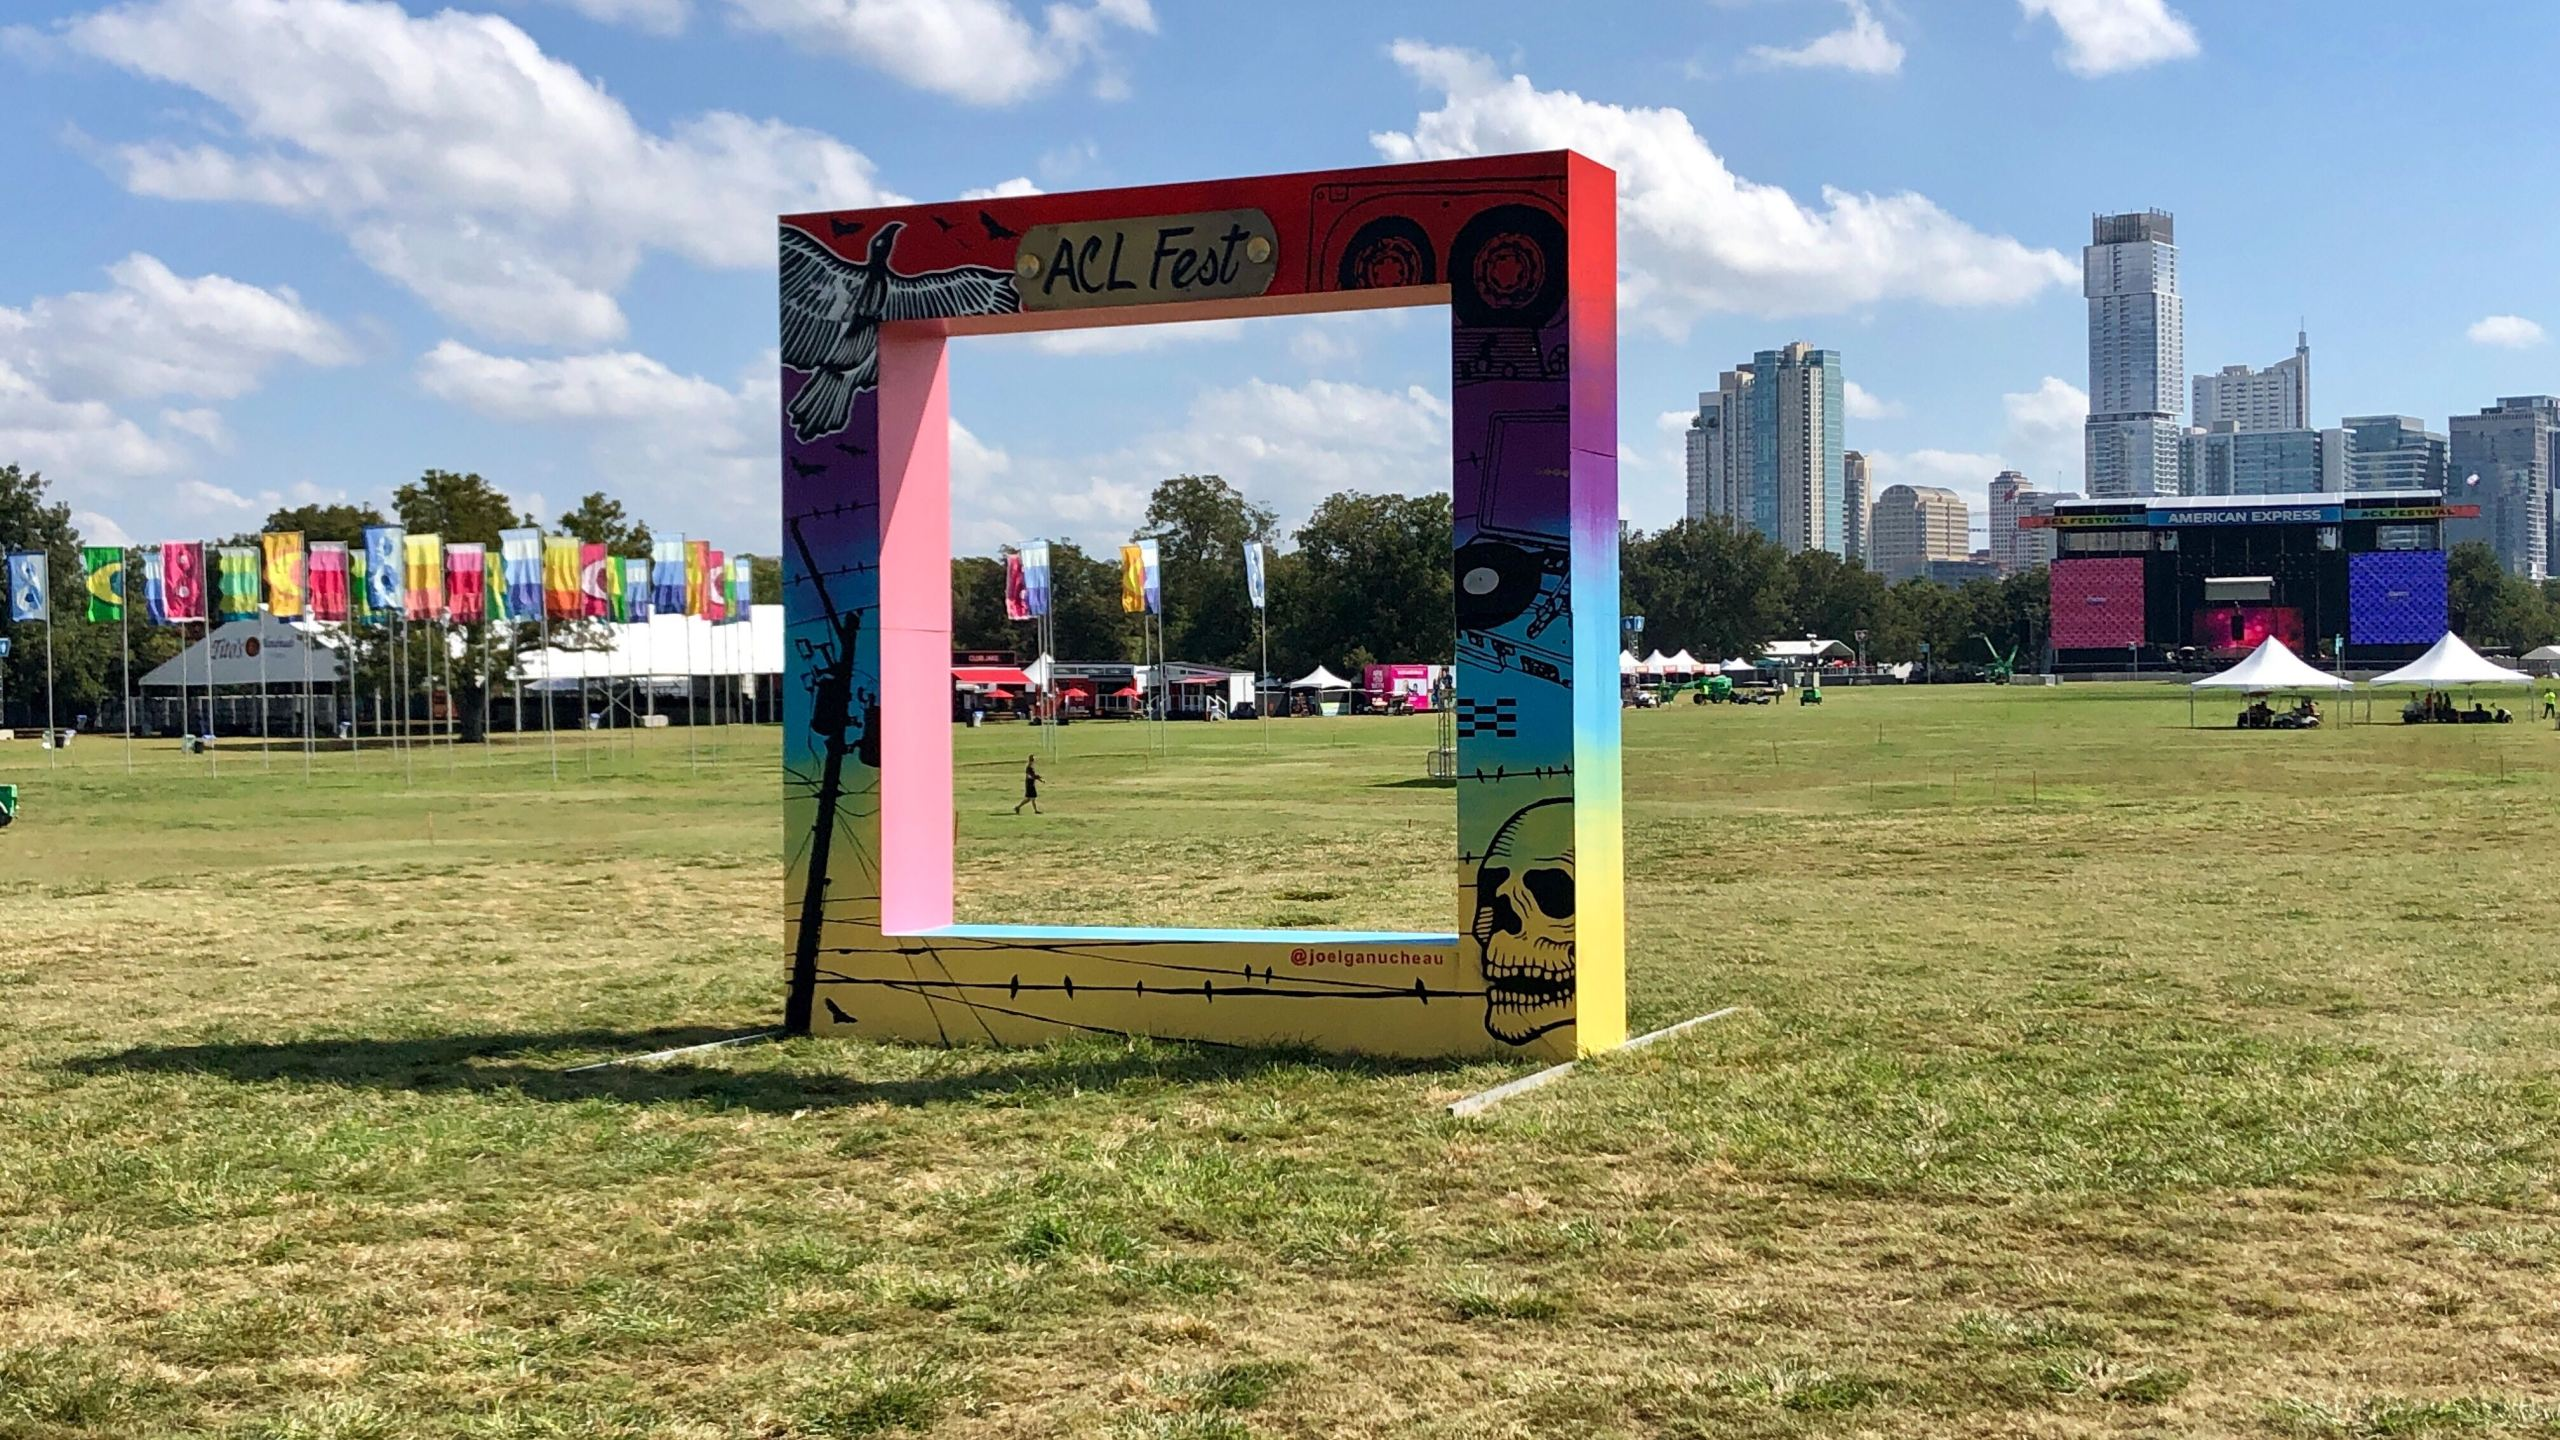 ACL-Image-this-year